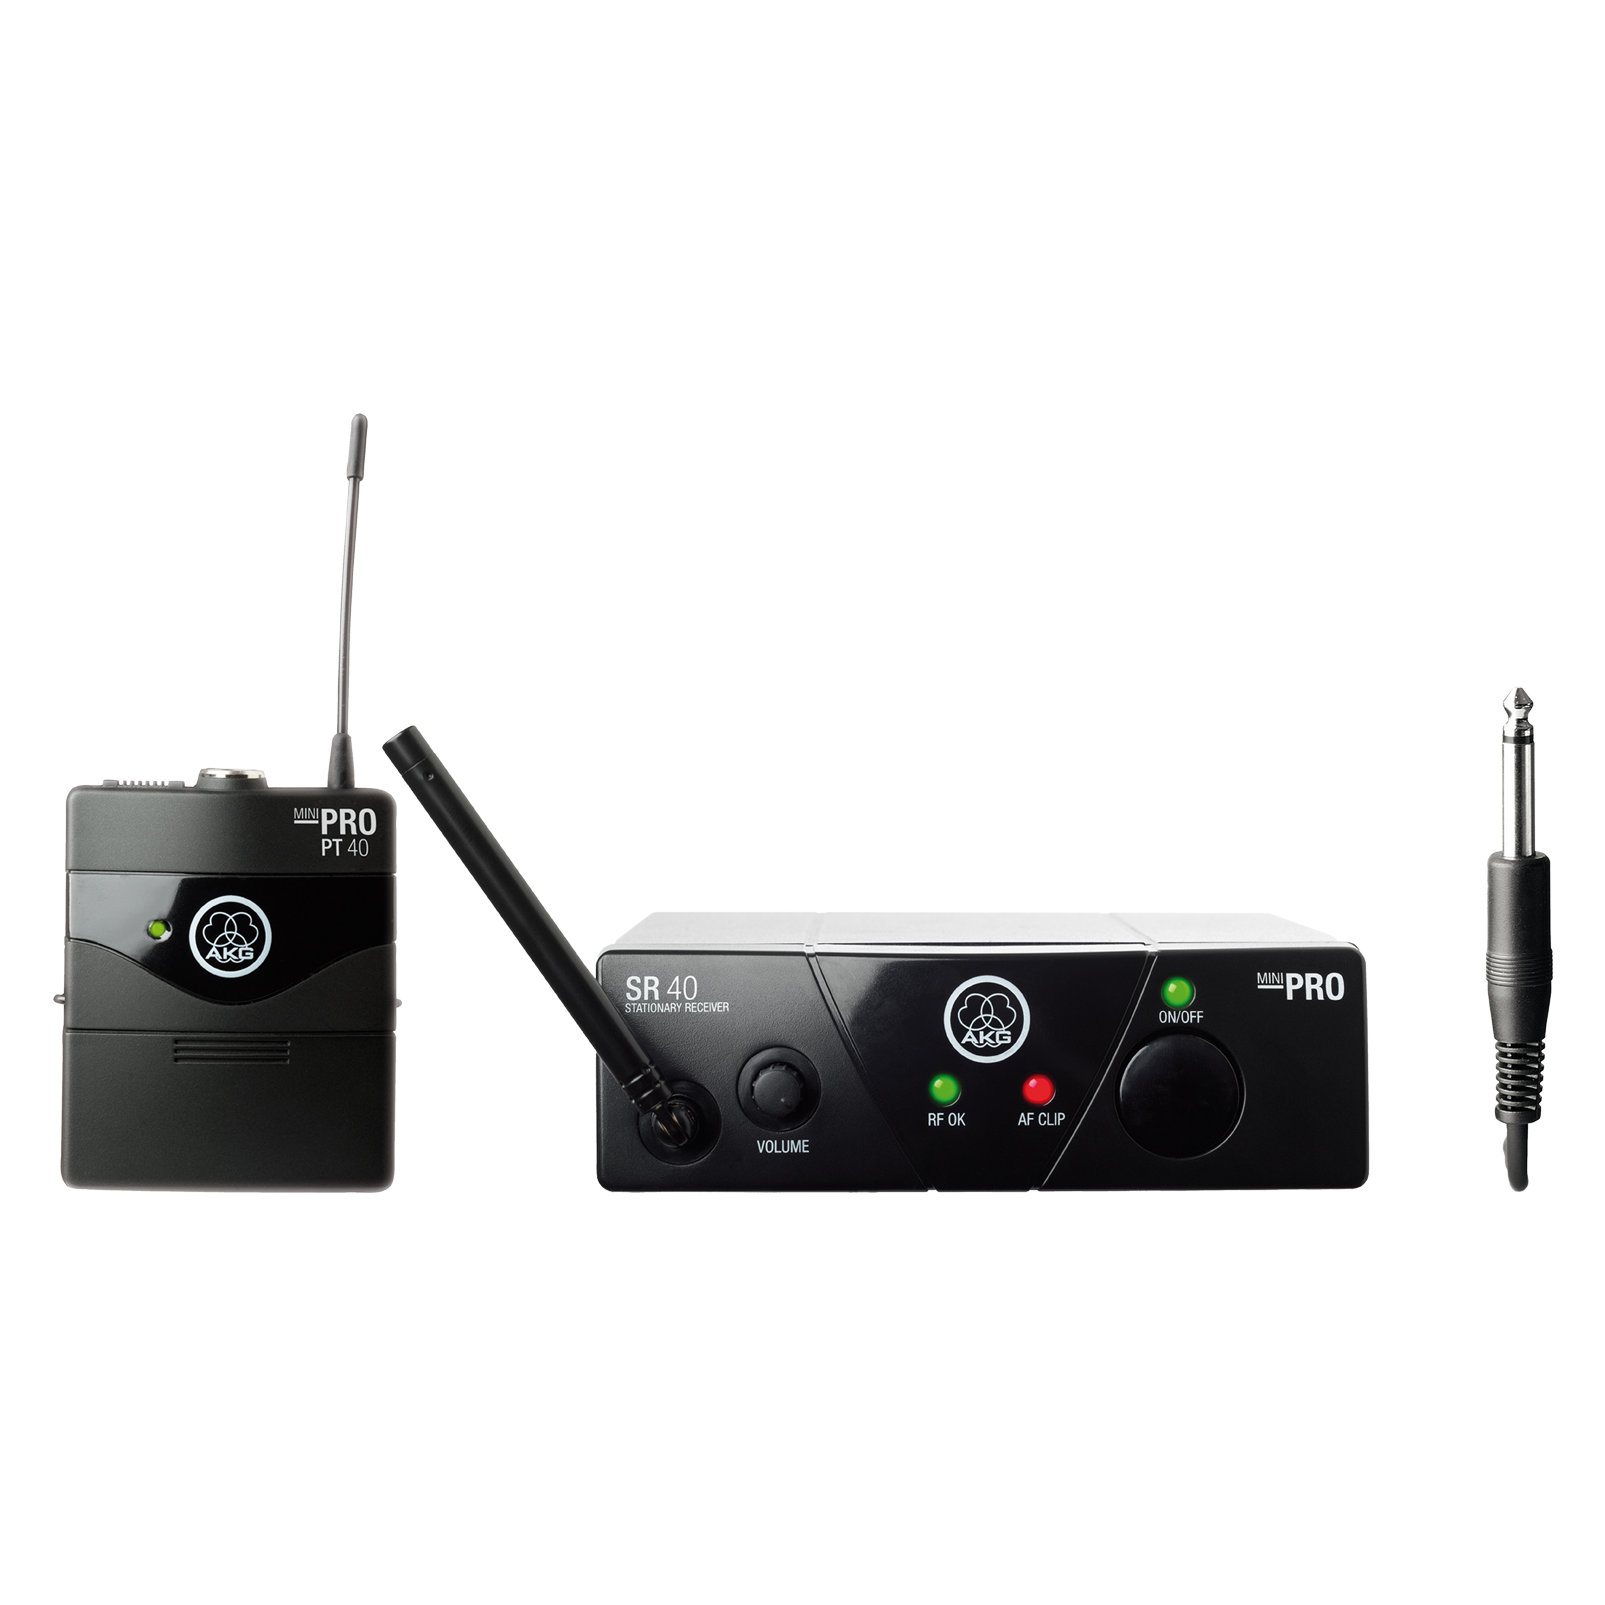 WMS40 Mini Instrumental Set Band-US25-A - Black - Wireless microphone system - Hero